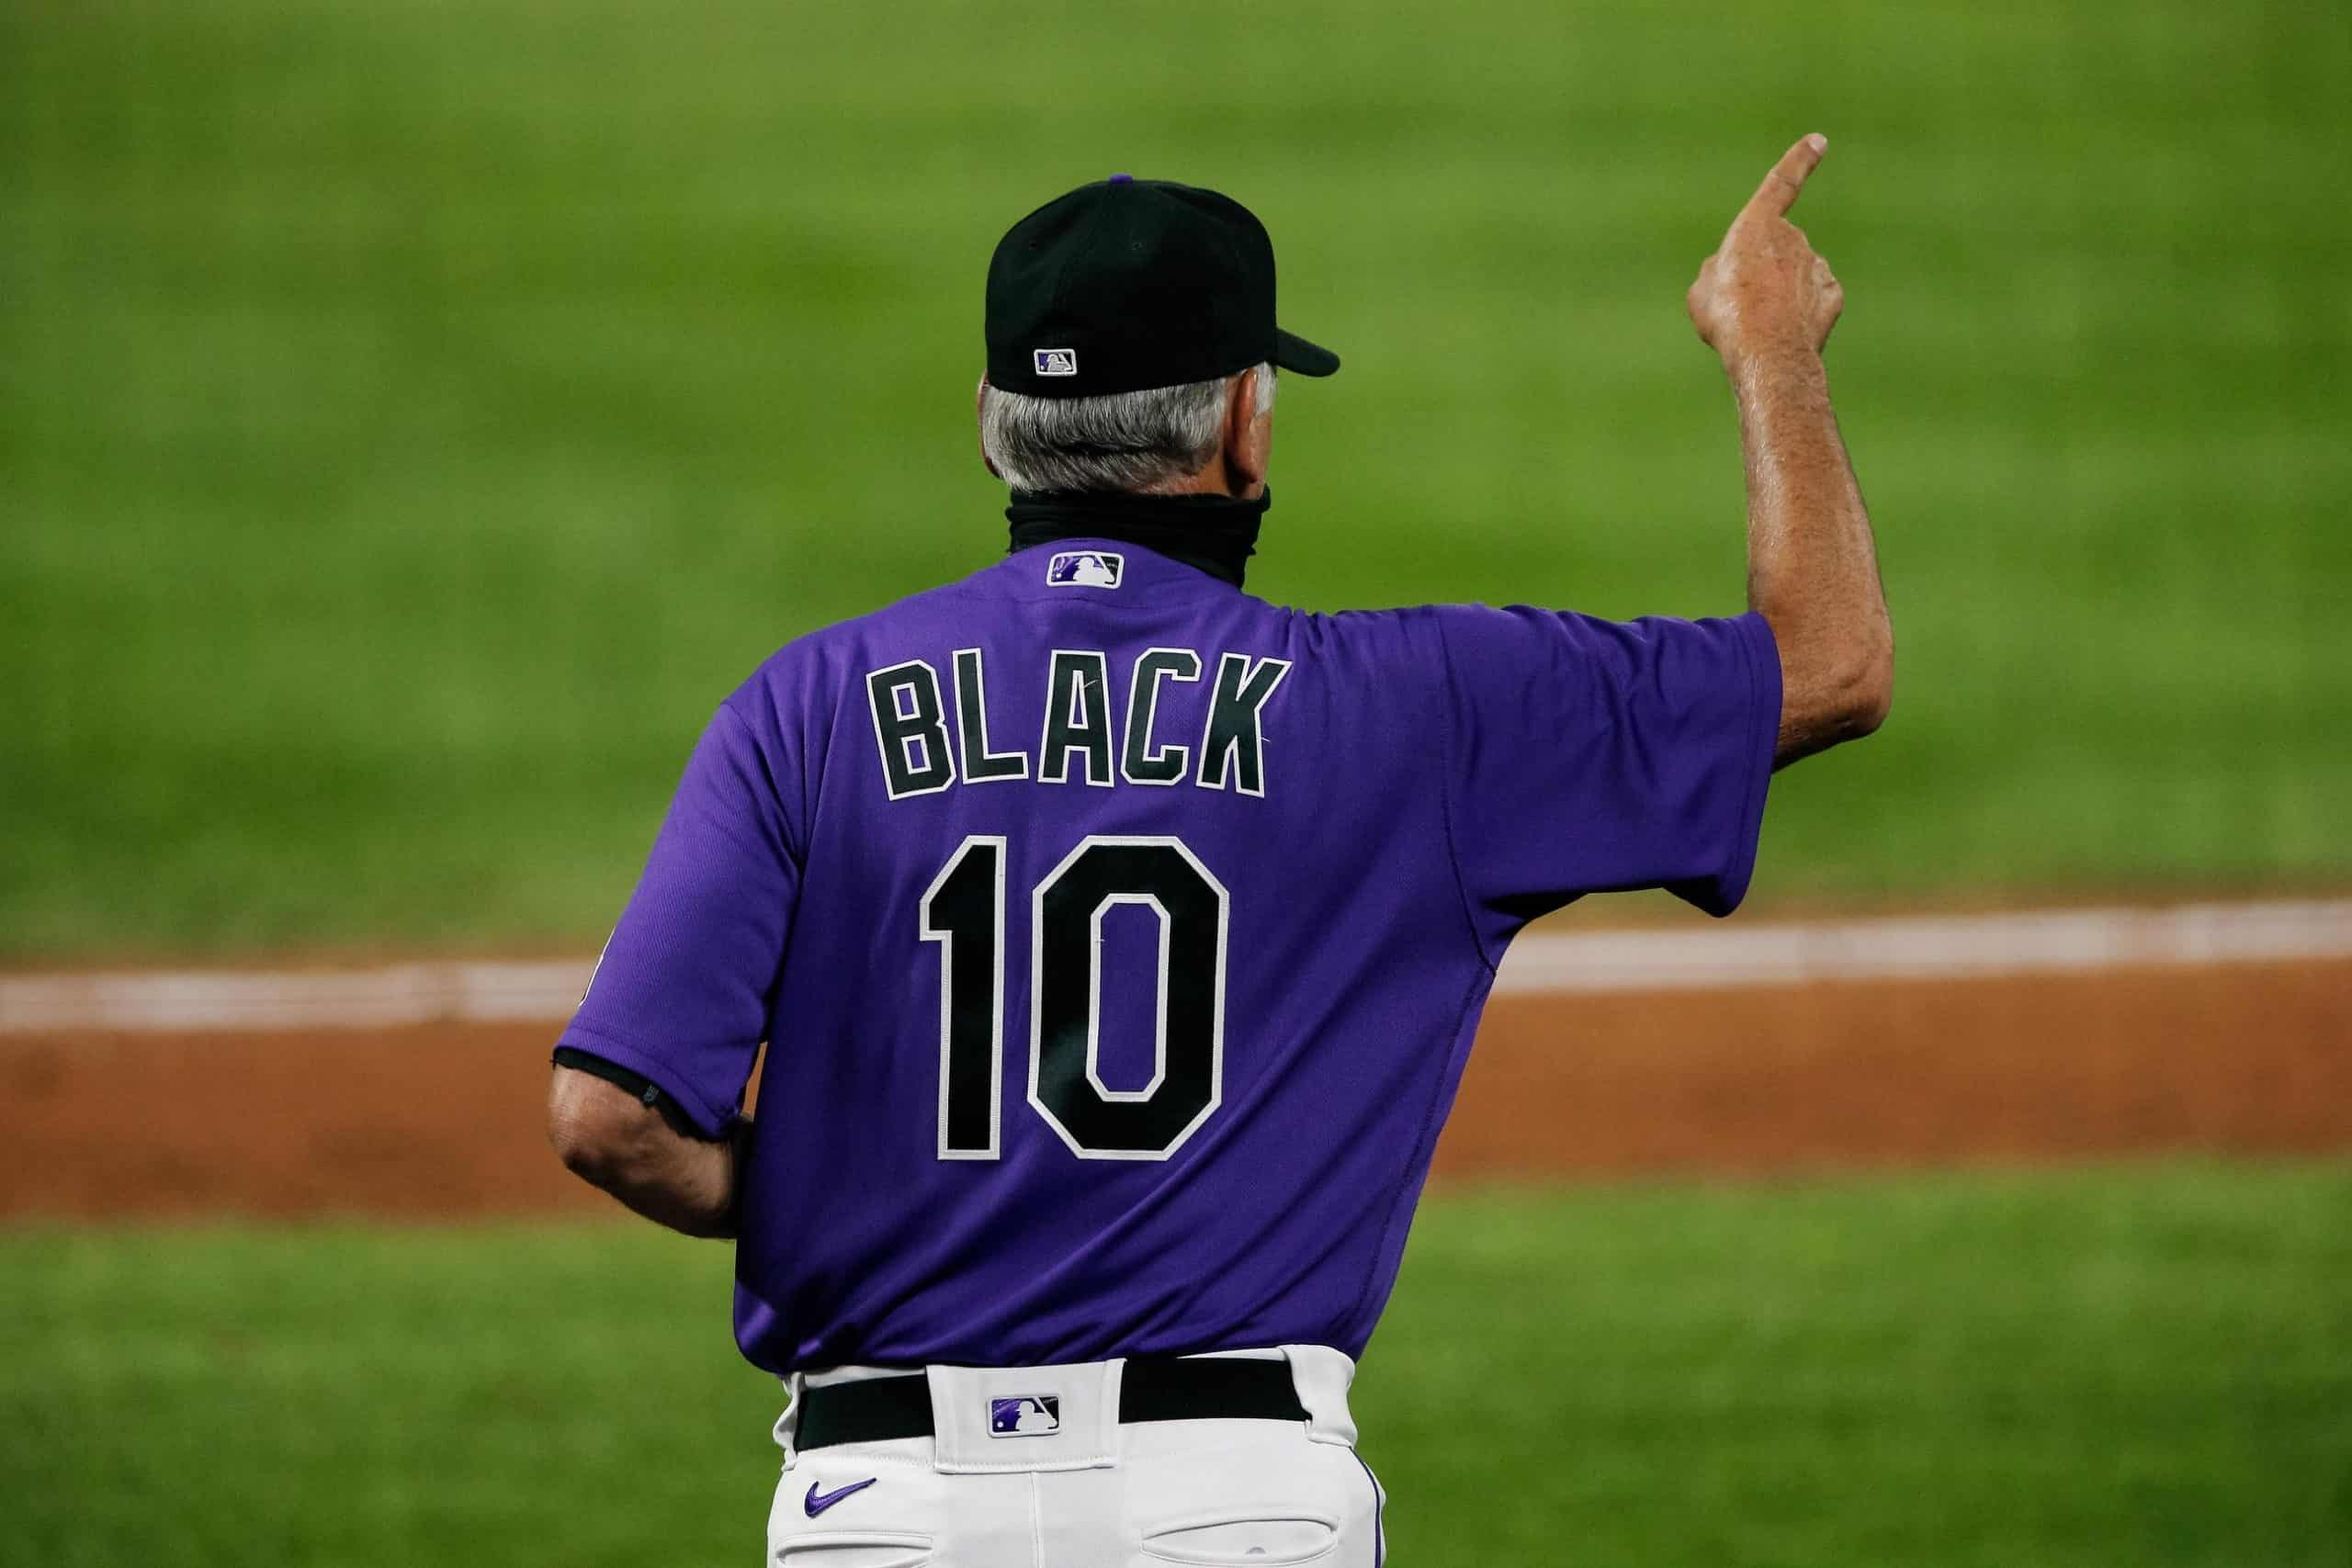 Bud Black and his lucky number 10.